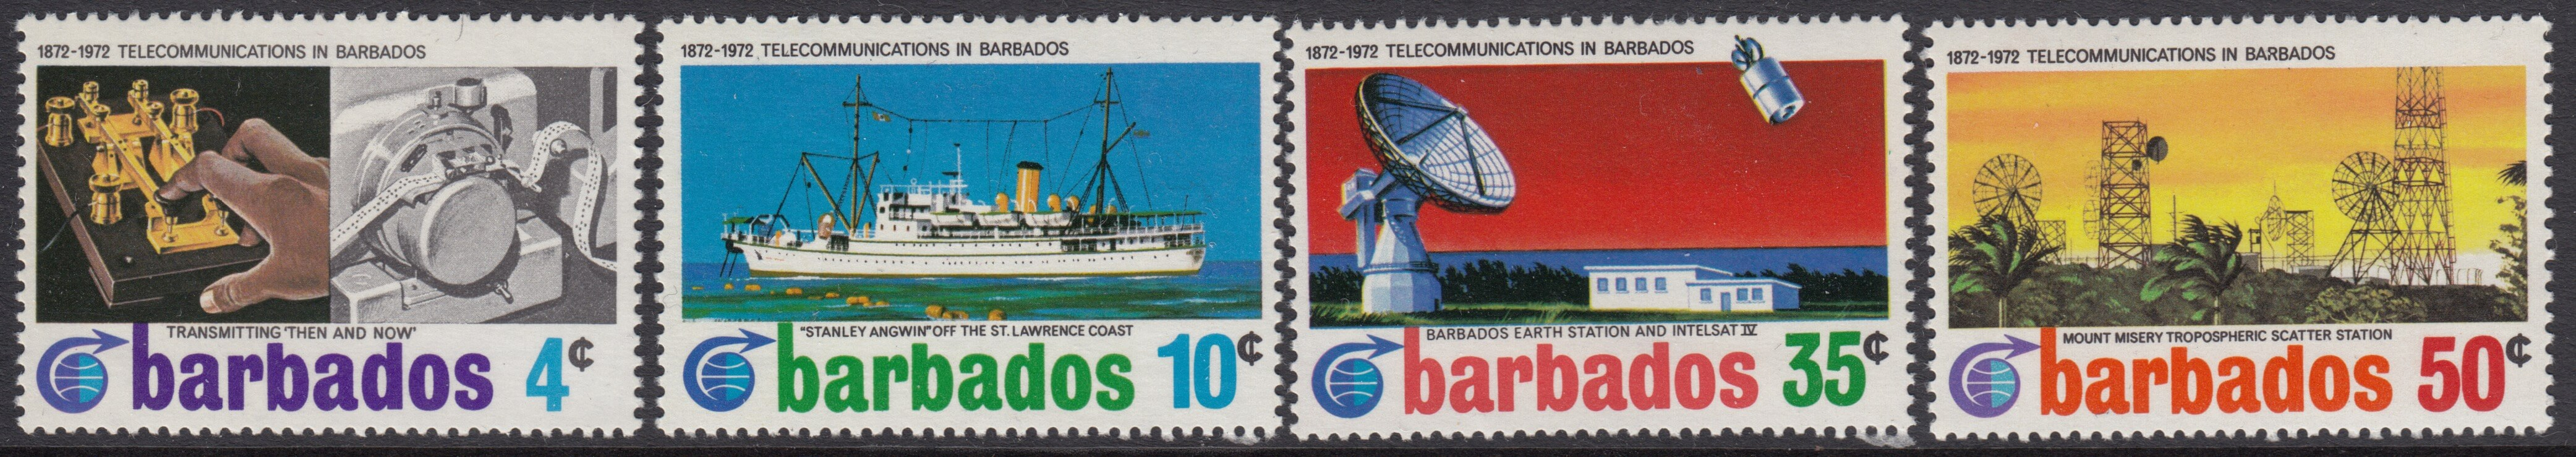 Barbados SG440-443 | Cable Link Centenary